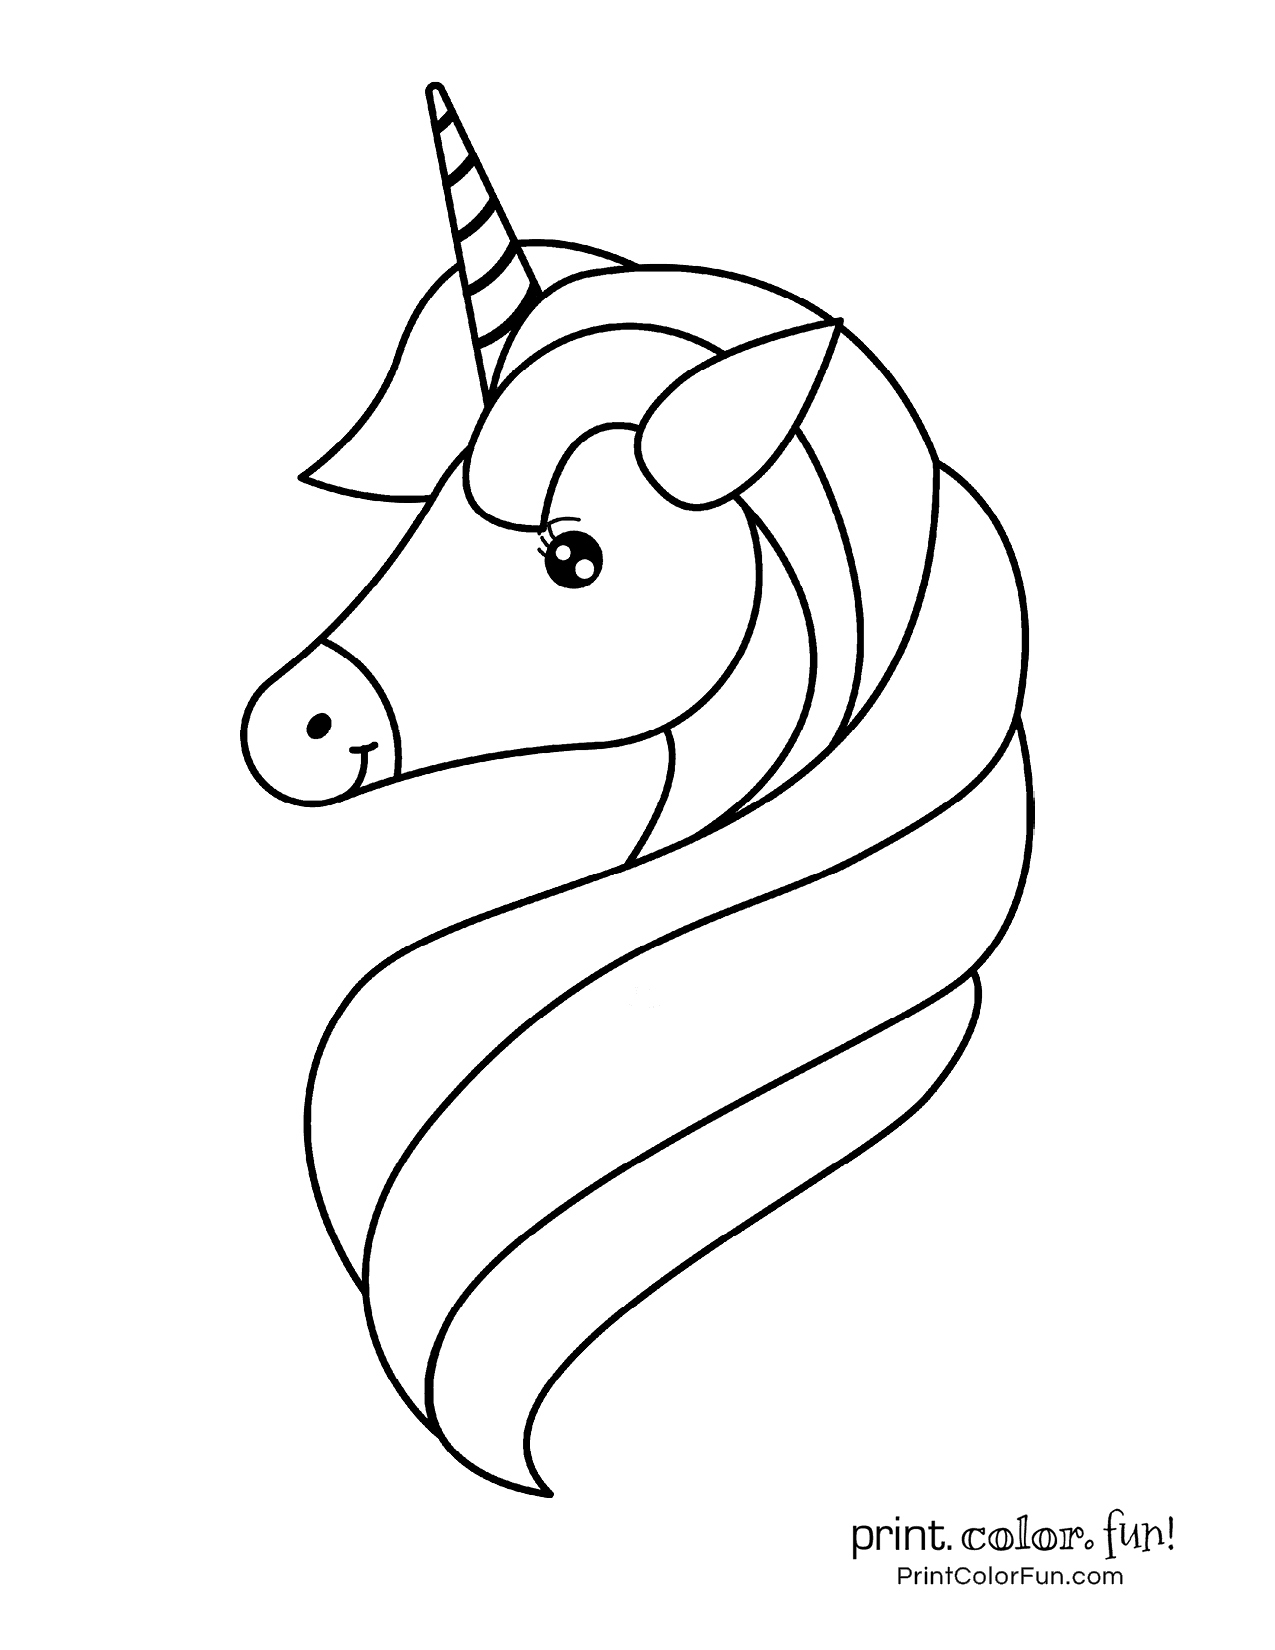 30 Beautiful Picture Of Cute Coloring Pages Albanysinsanity Com Unicorn Coloring Pages Cute Coloring Pages Emoji Coloring Pages